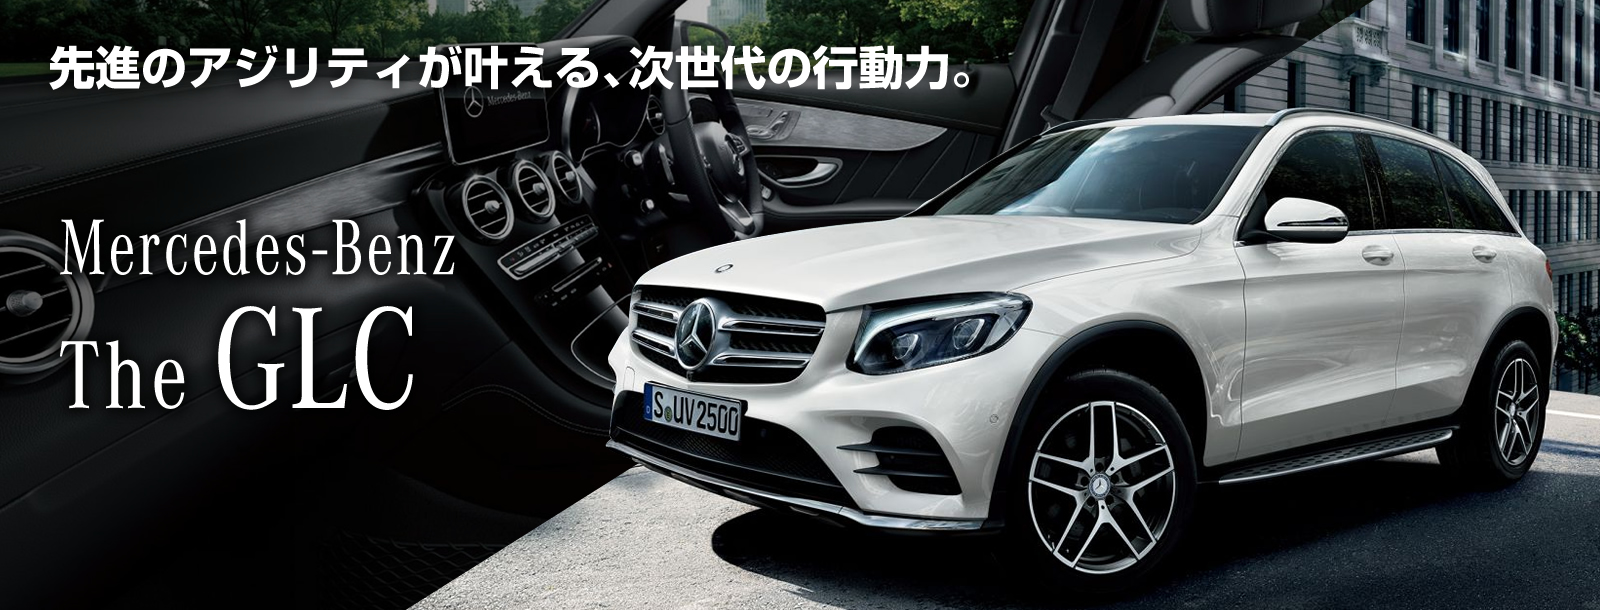 Mercedes-Benz The GLC